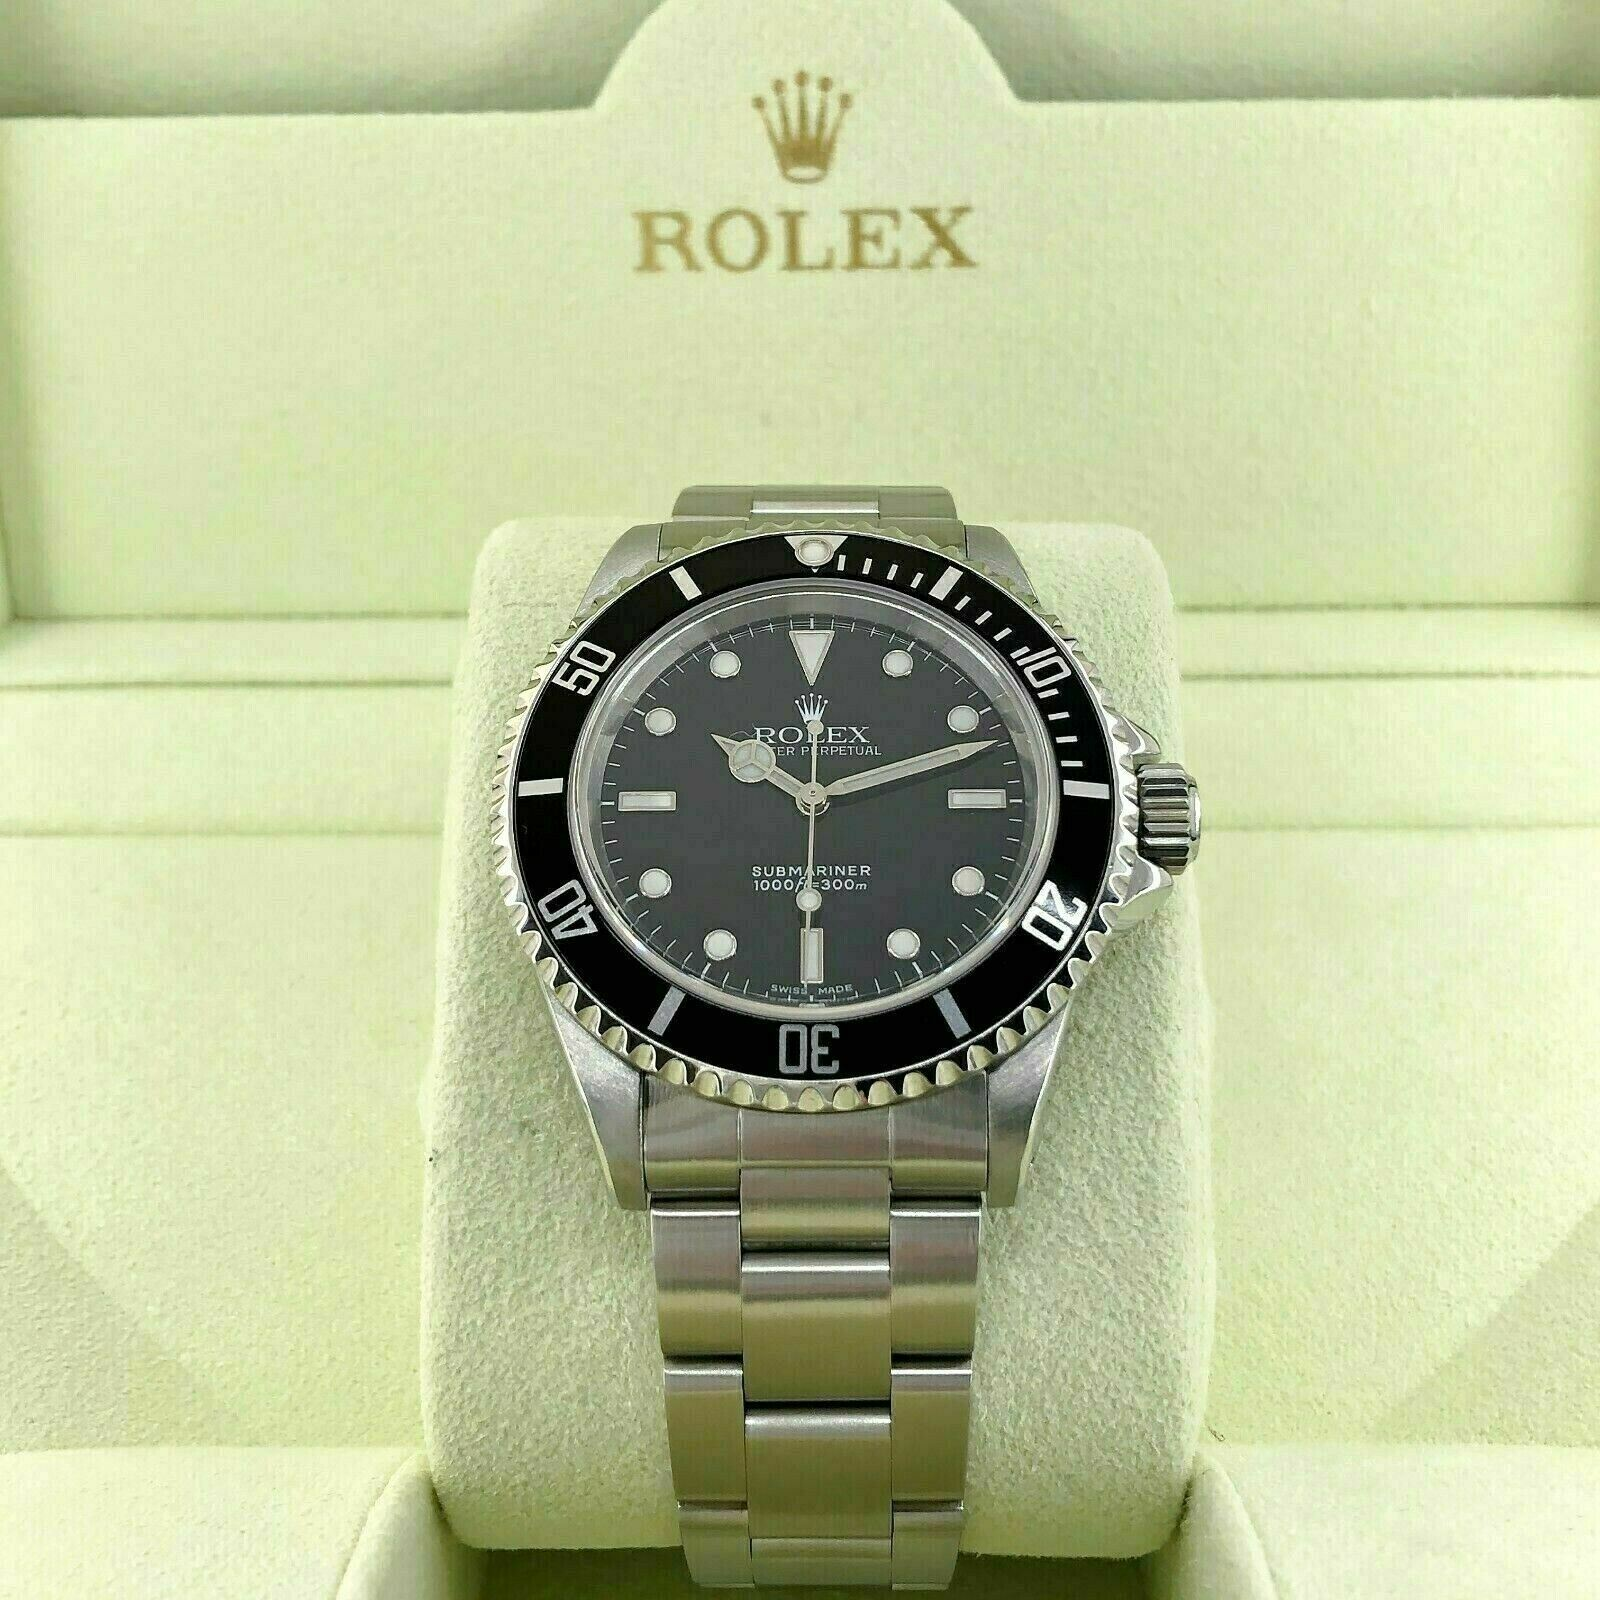 Rolex Black 4 Line No Date Submariner Stainless Steel Watch Ref 14060M K Serial